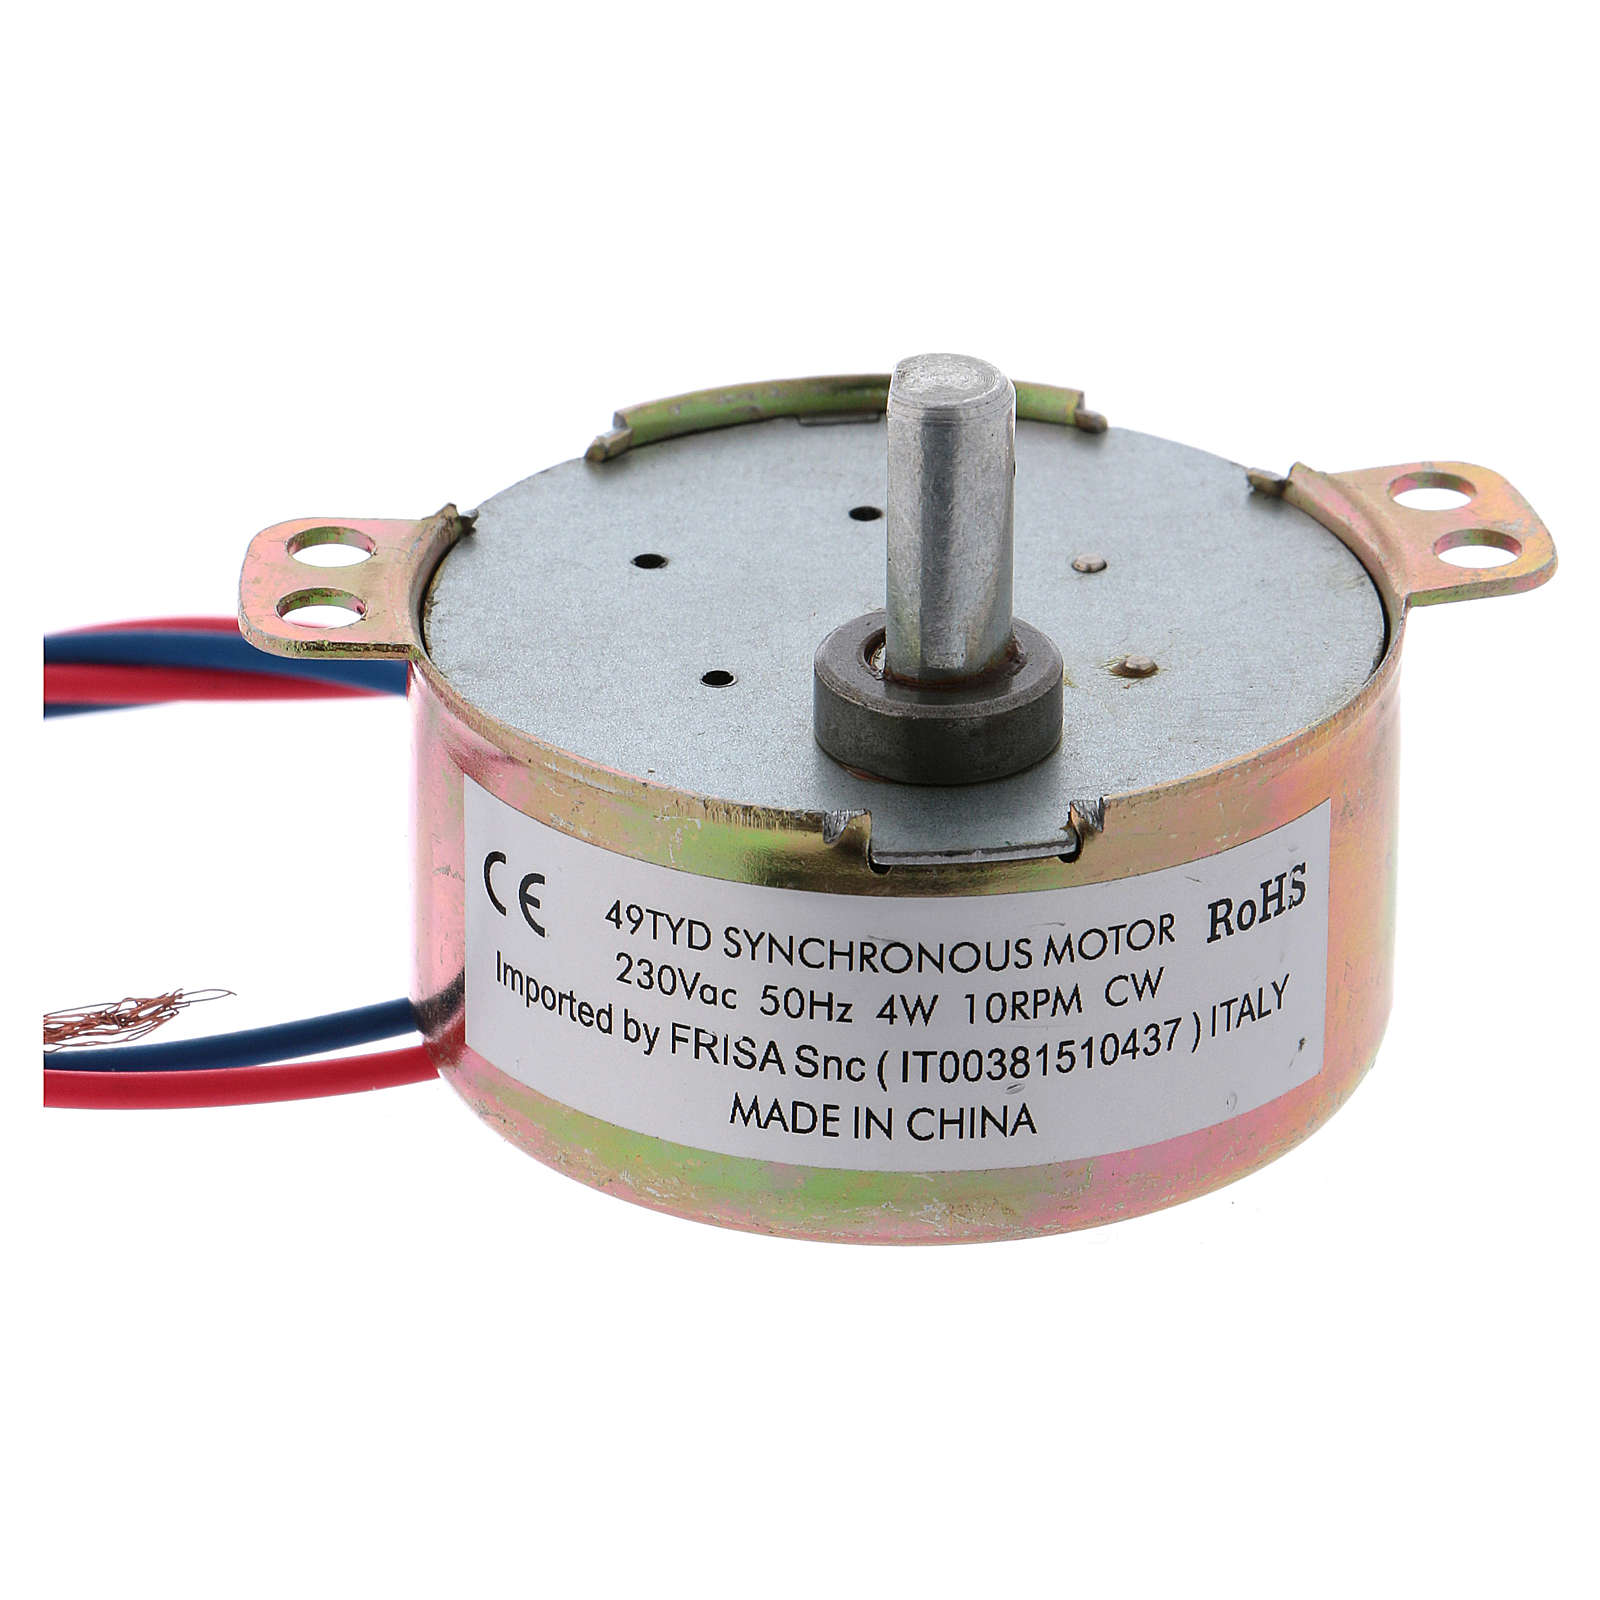 Nativity accessory, ME gear motor, 10 t/m 4